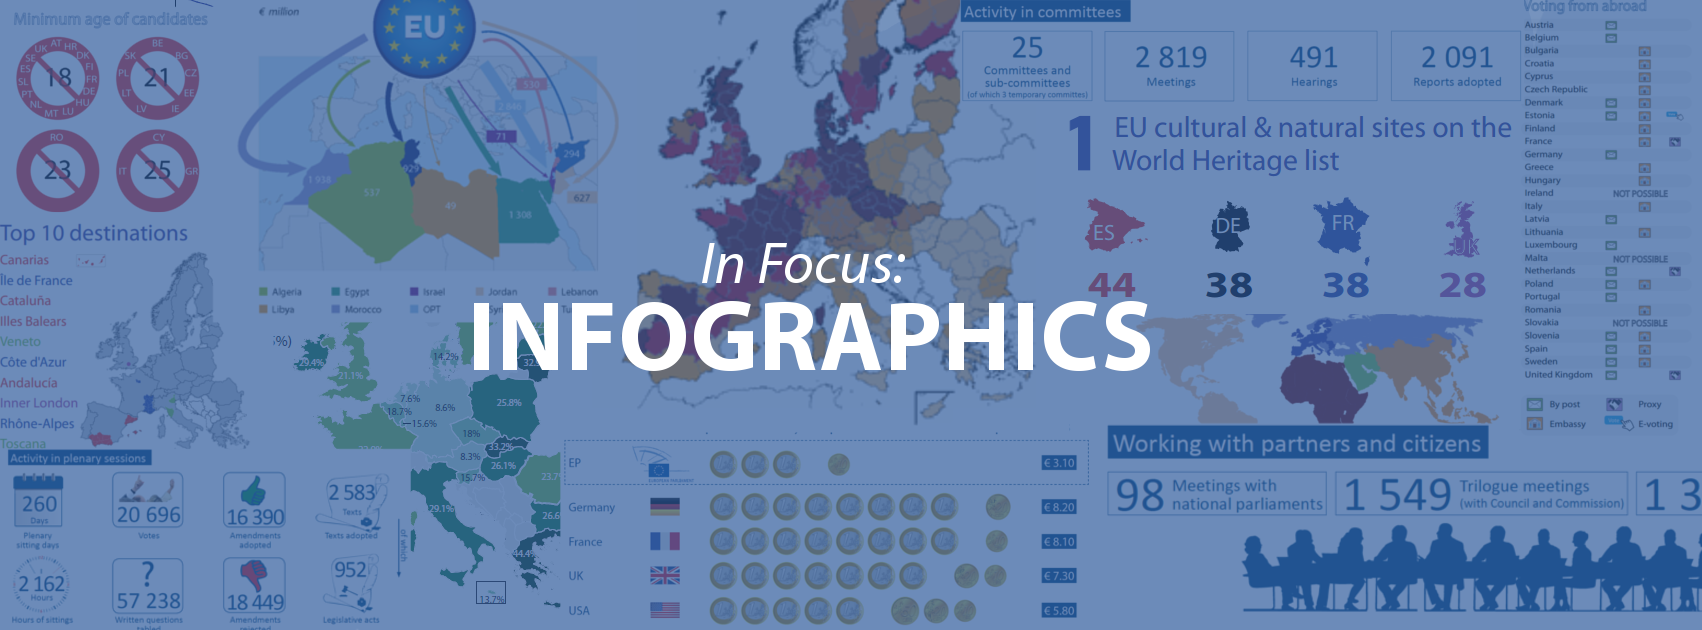 In Focus: Infographics